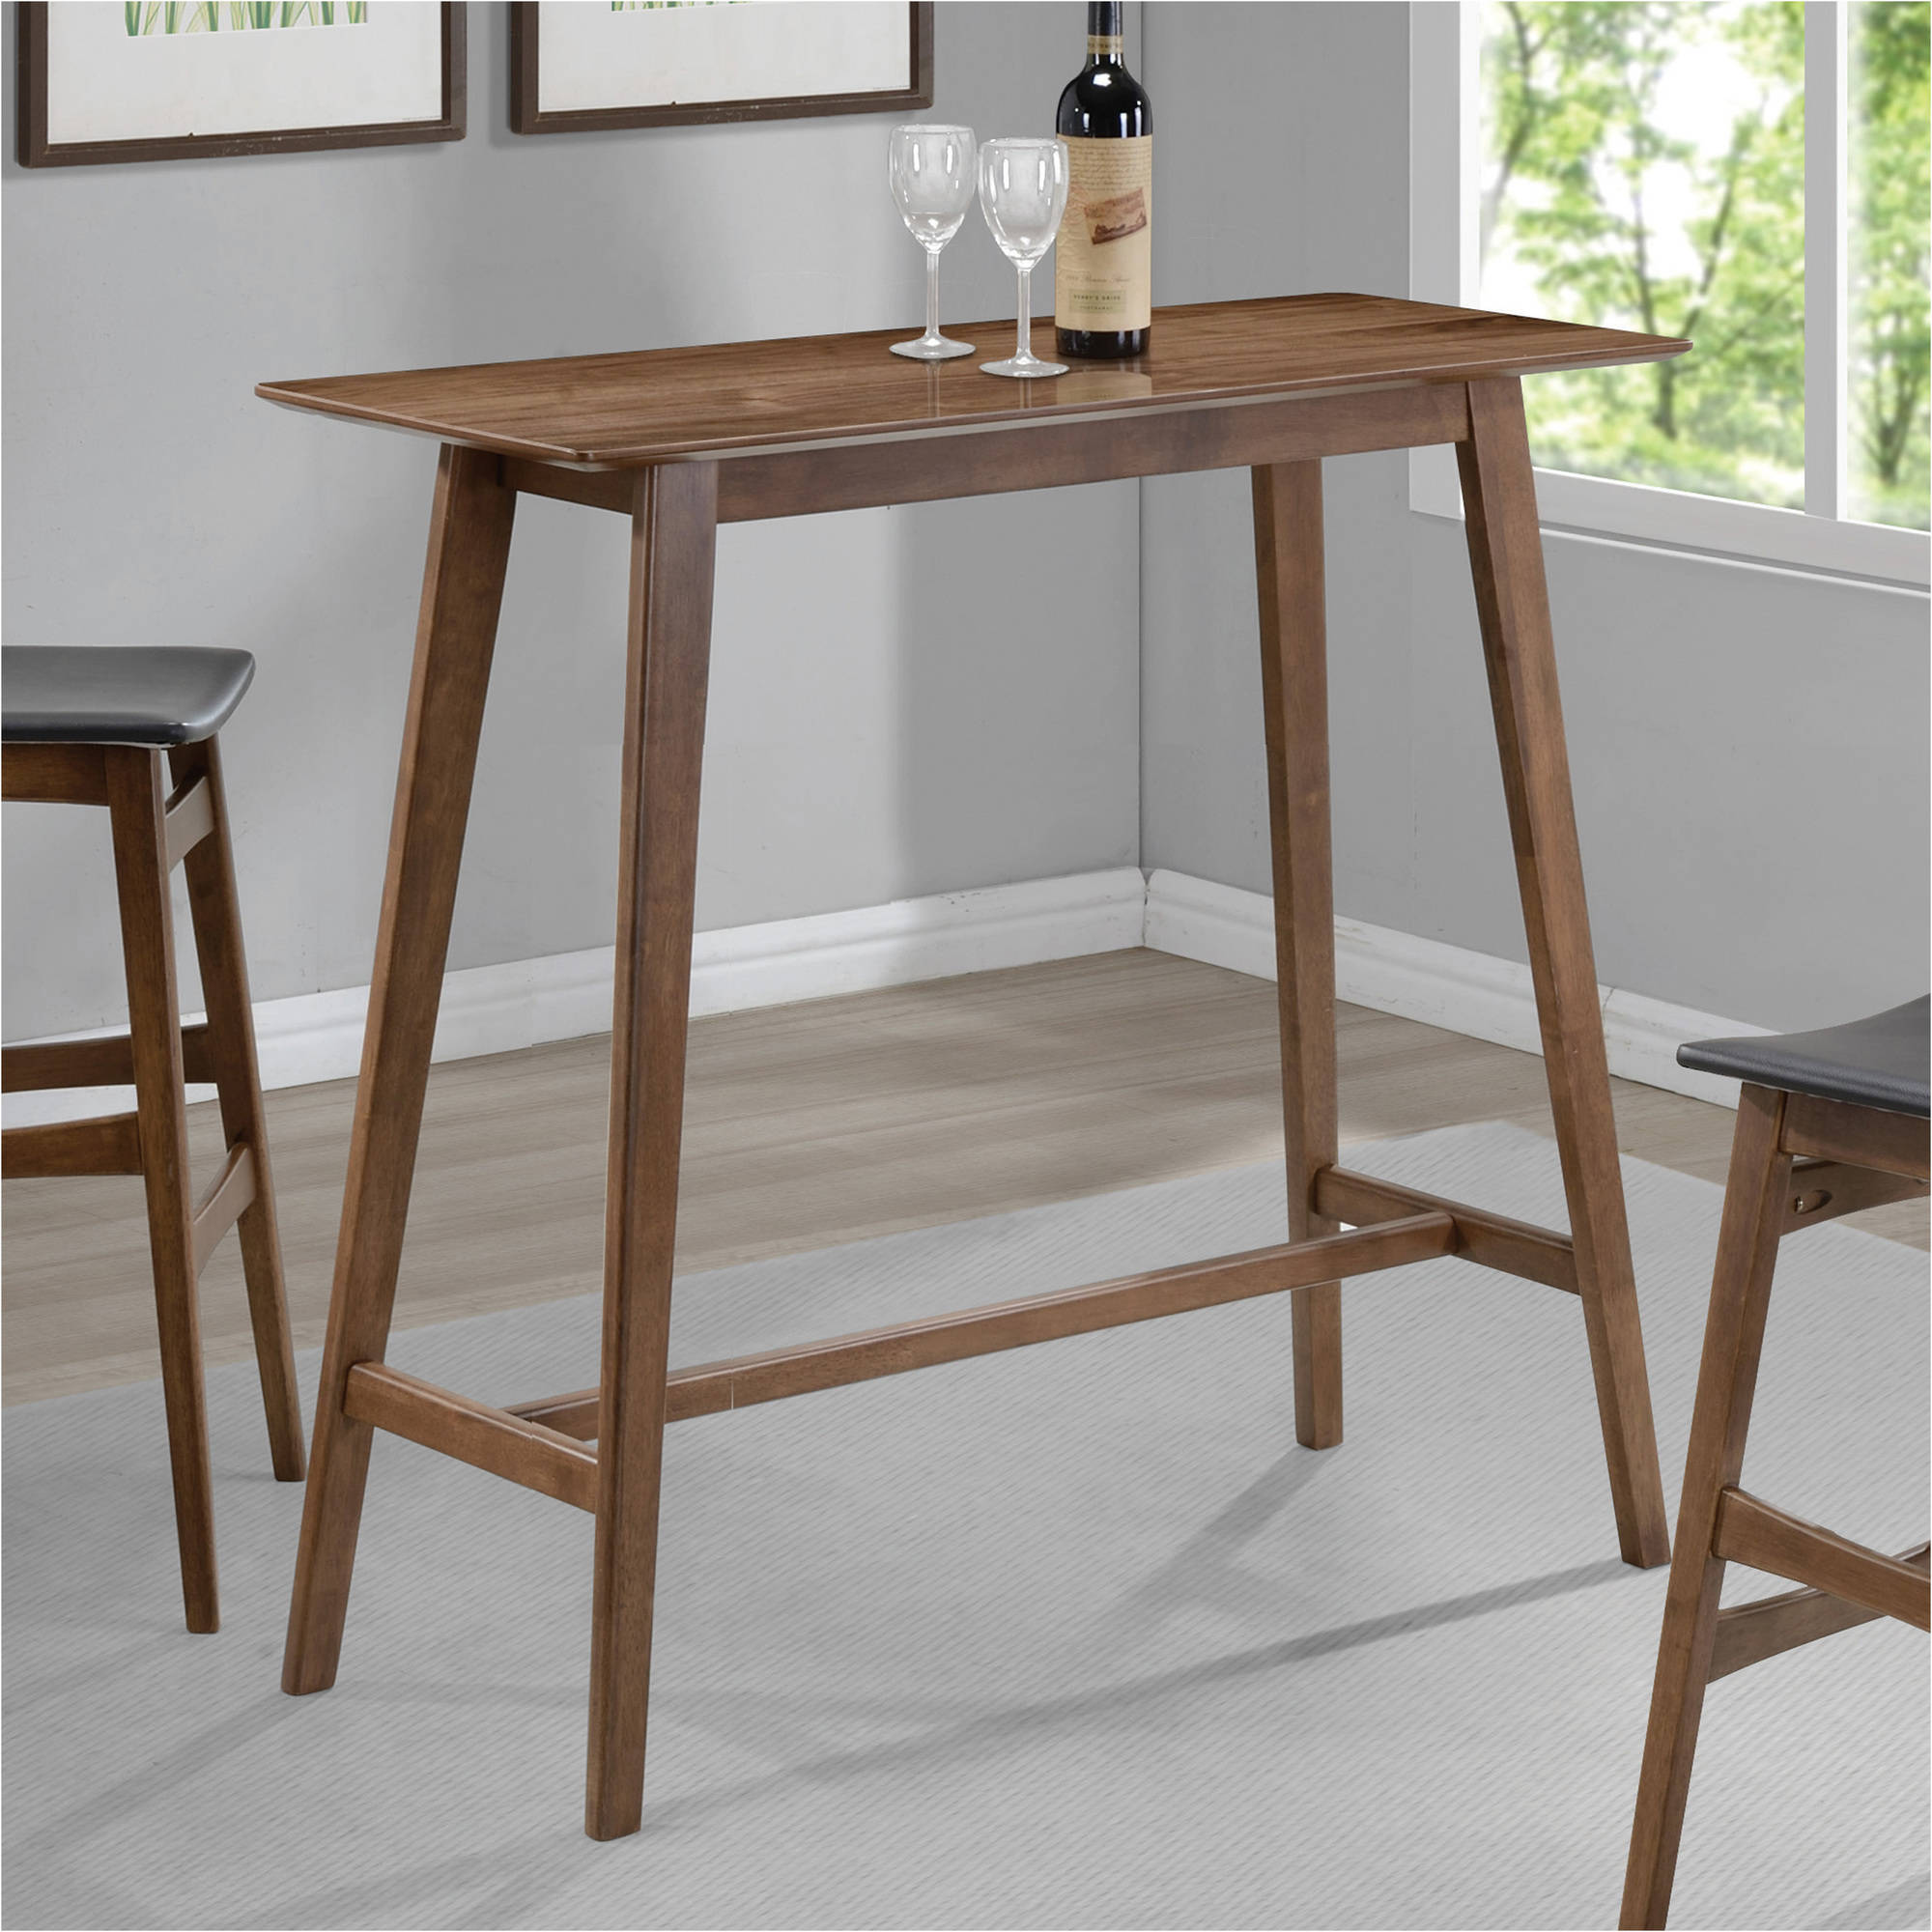 Coaster Mid-Century Modern Rectangular Bar Table, Walnut Finish